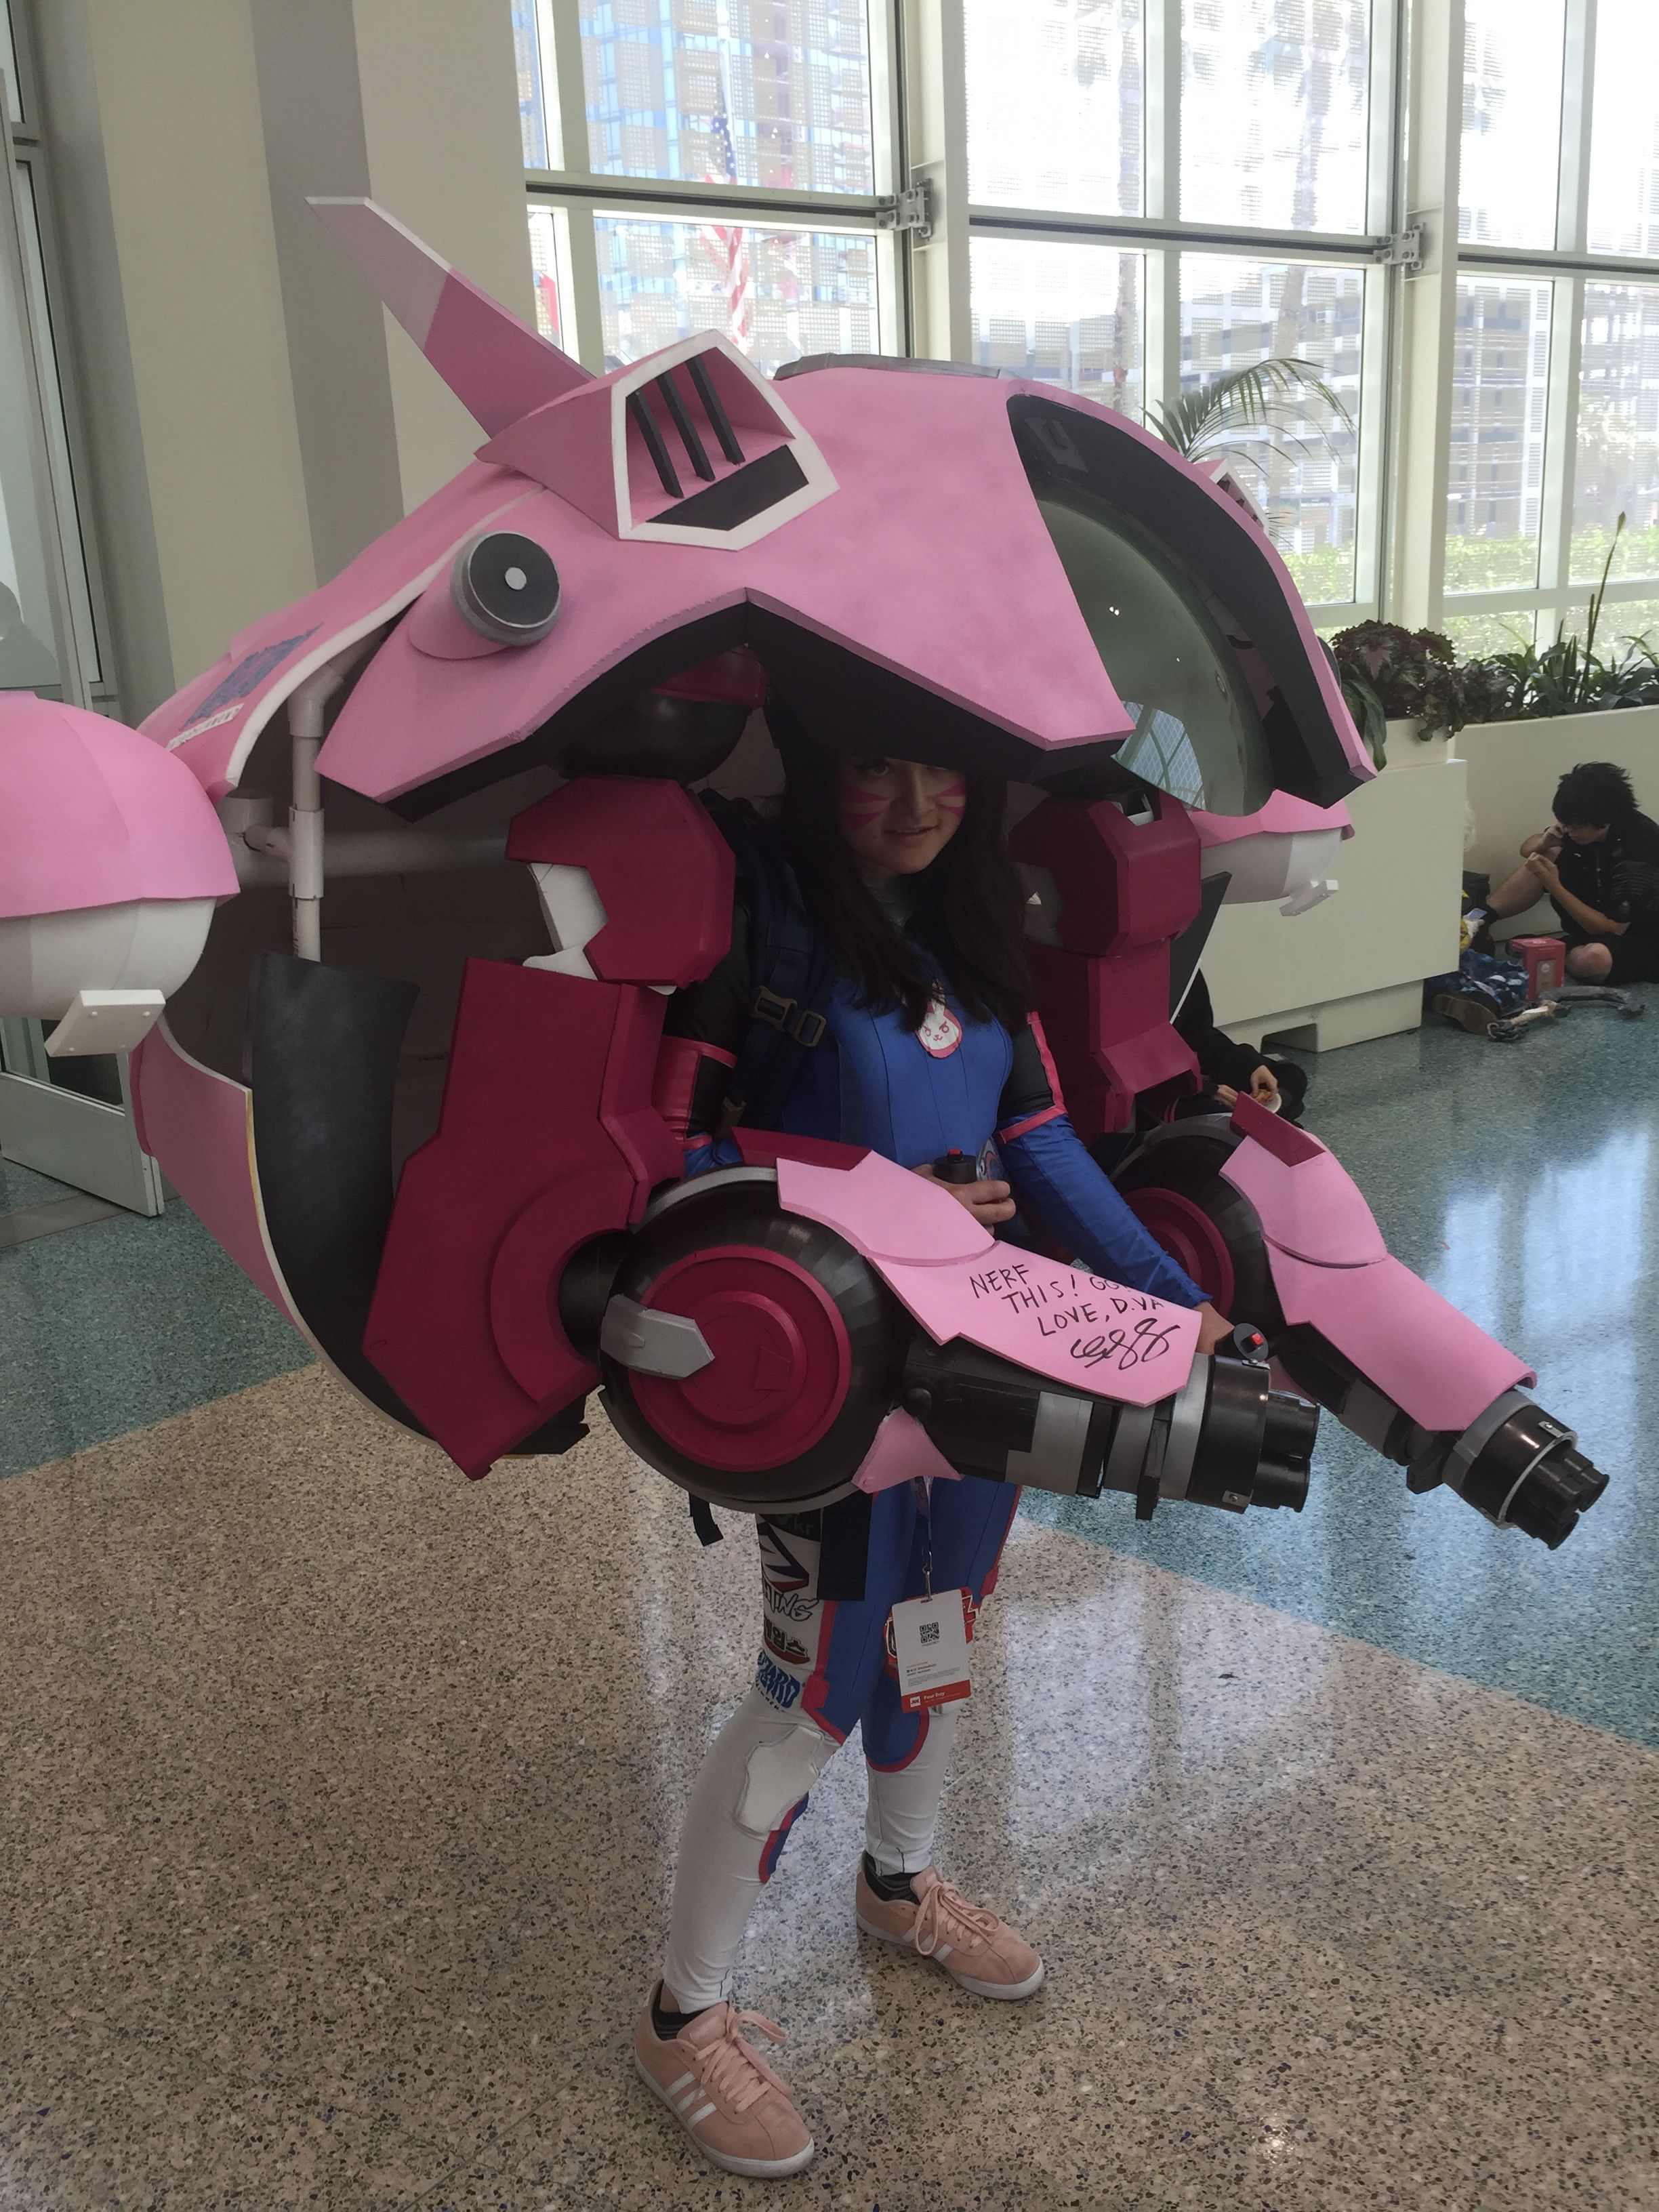 Anime Expo 2017 DVa Cosplayer With Autograph From Charlet Chung